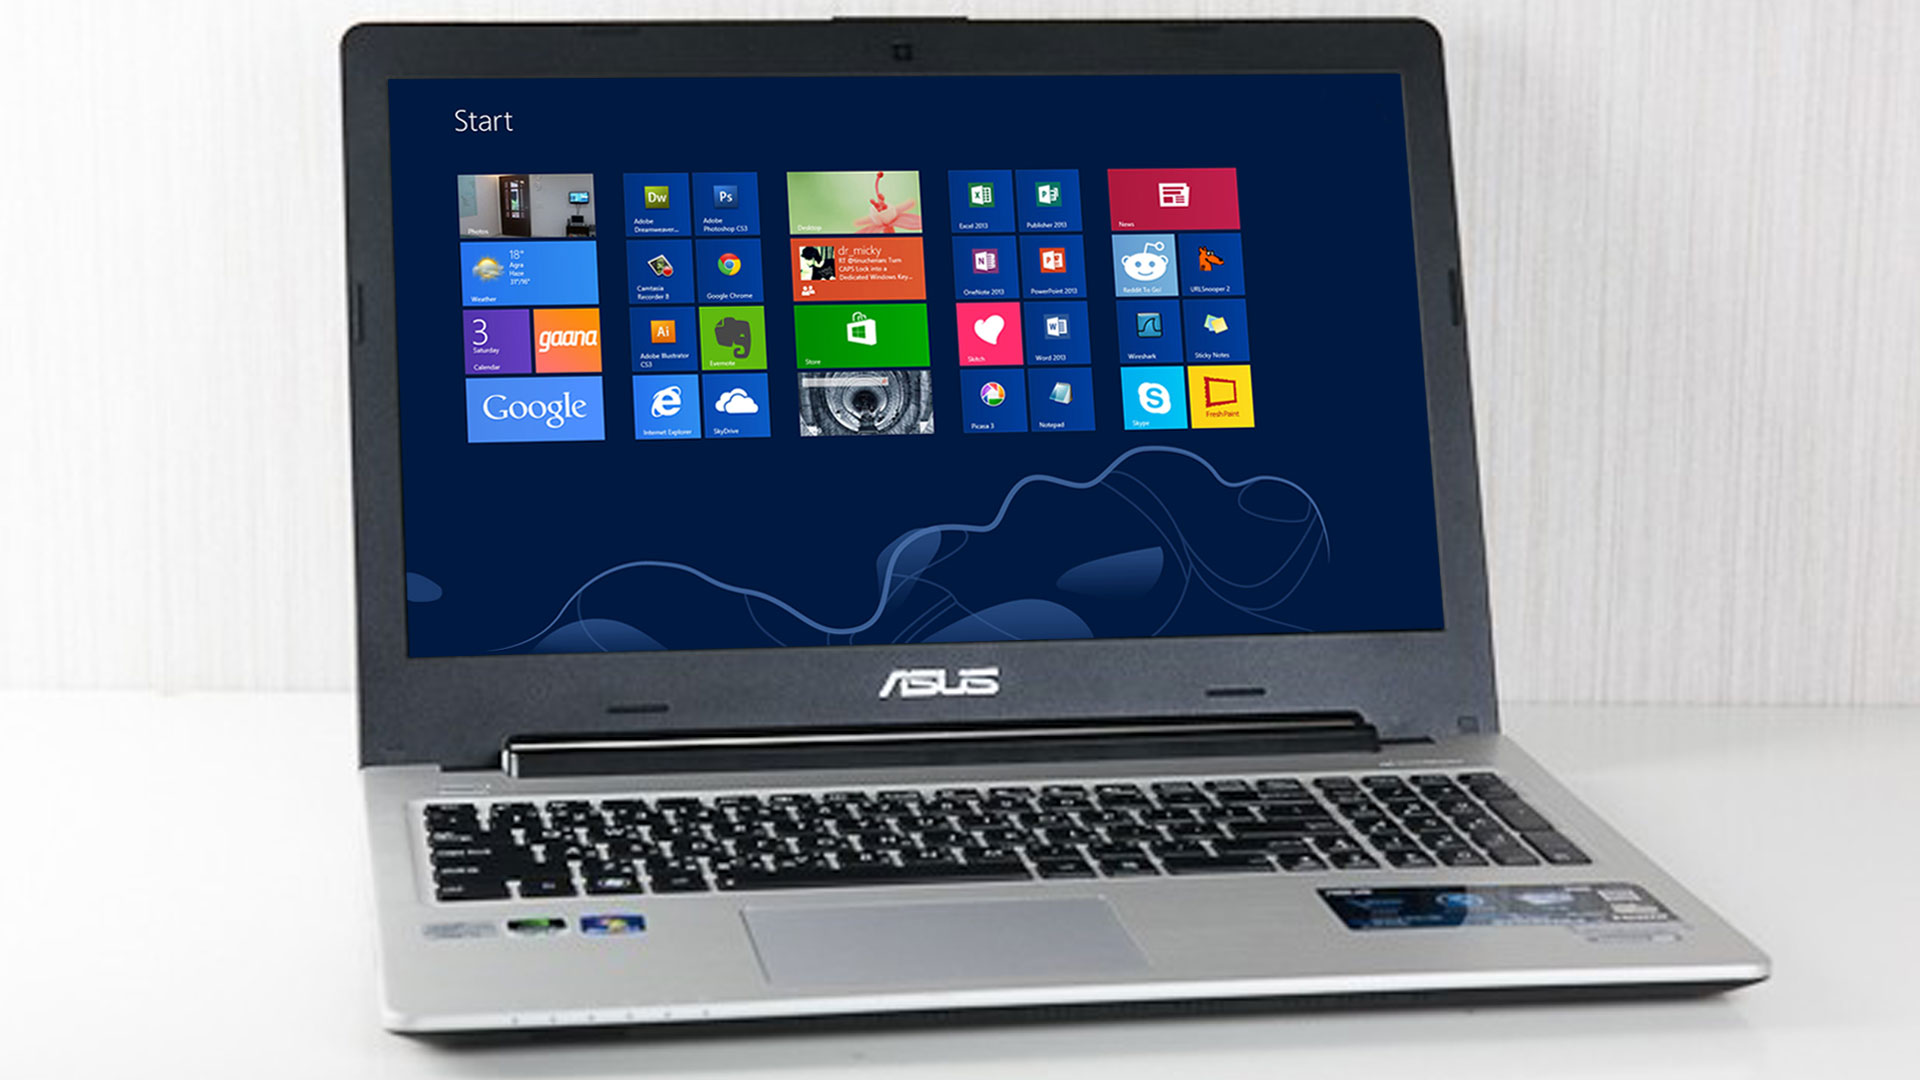 how to turn off touchpad on asus laptop windows 7